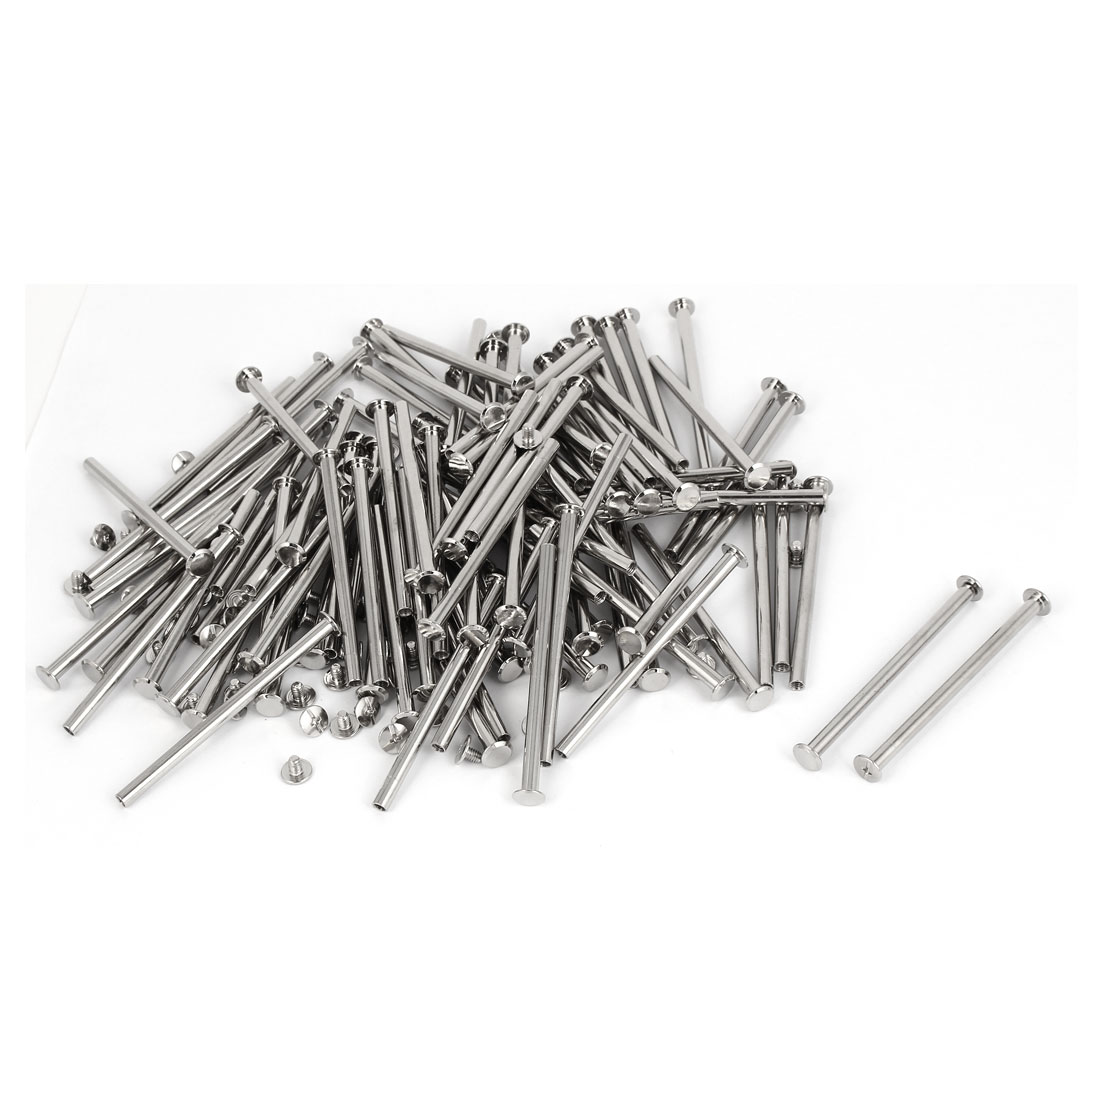 M5 x 80mm Metal Scrapbook Catalogs Binding Chicago Screws Posts 100 Pcs